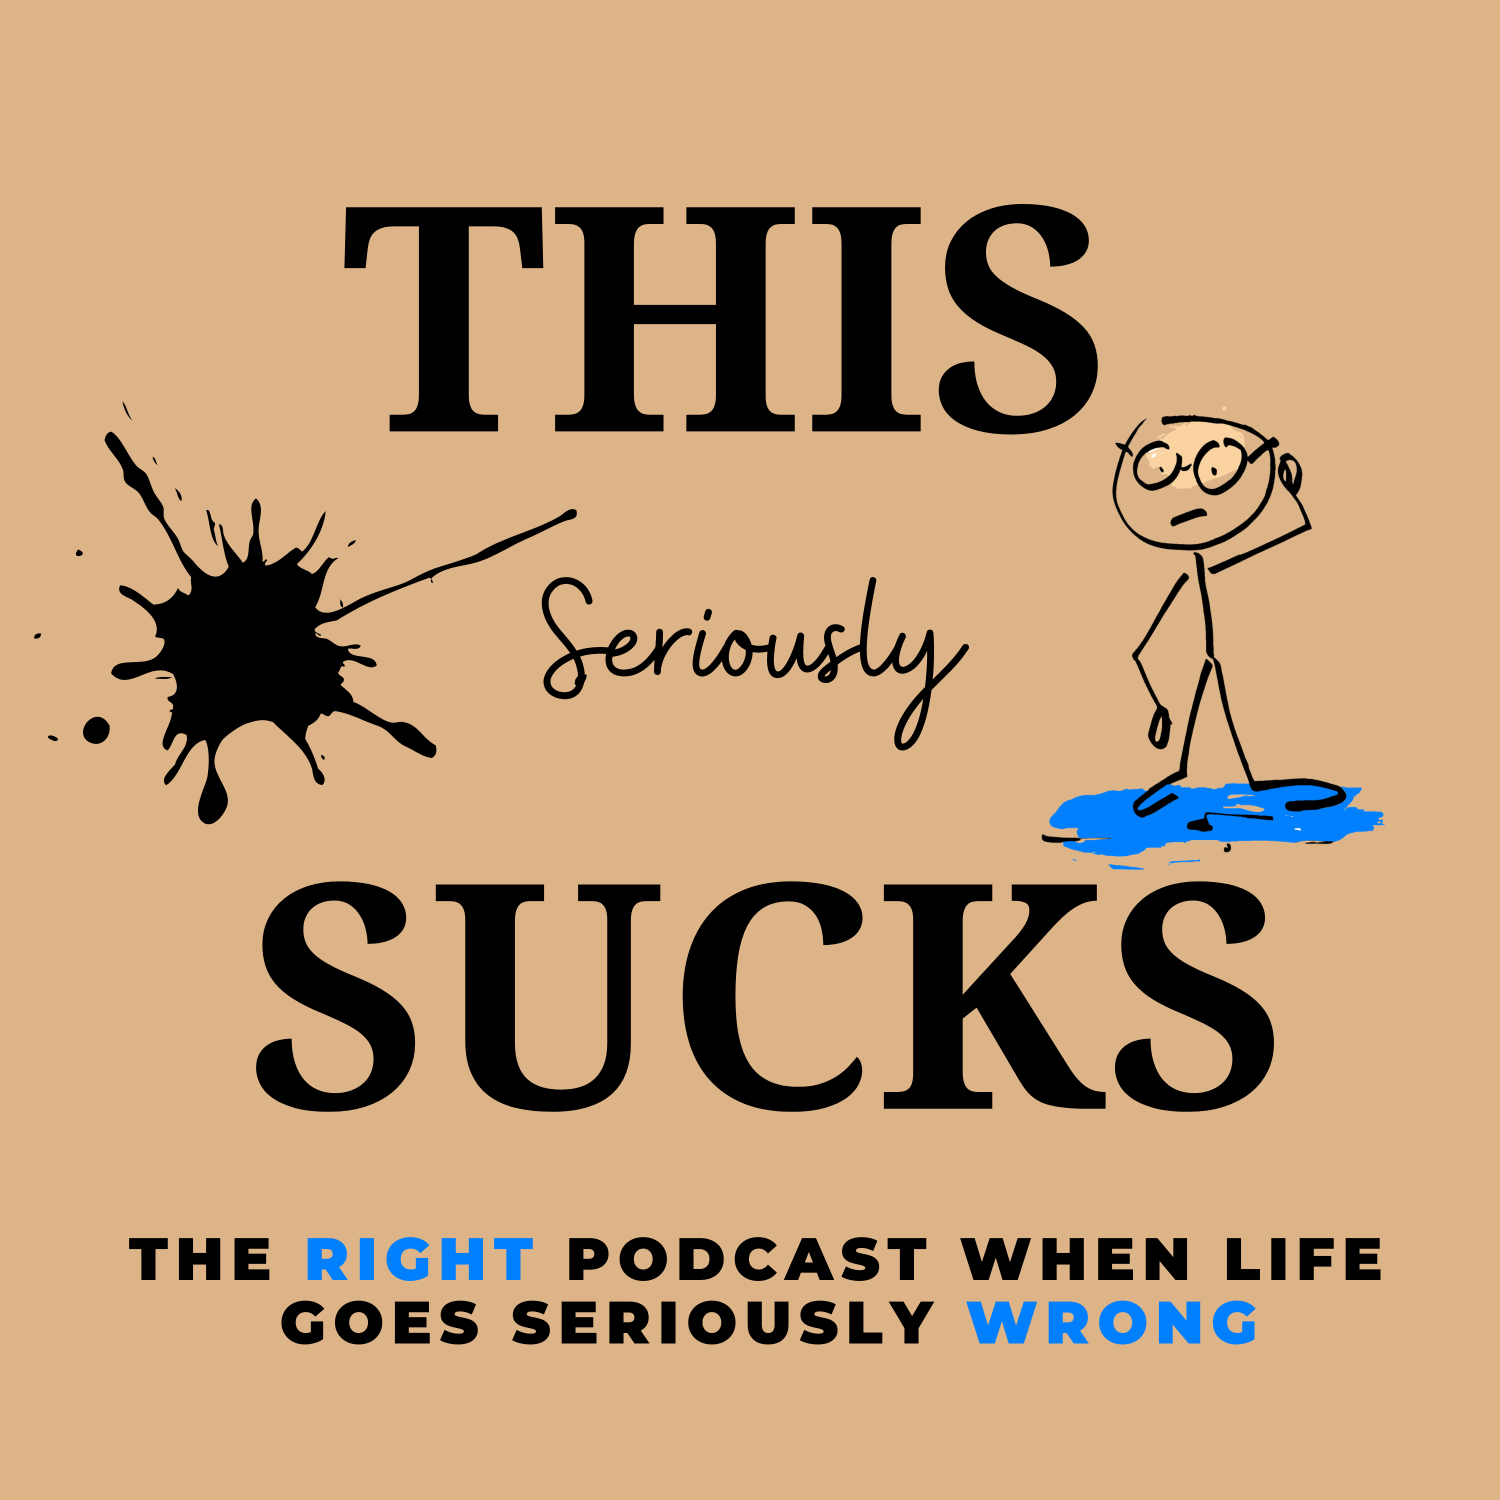 THIS Seriously Sucks, the Right podcast when life goes seriously Wrong